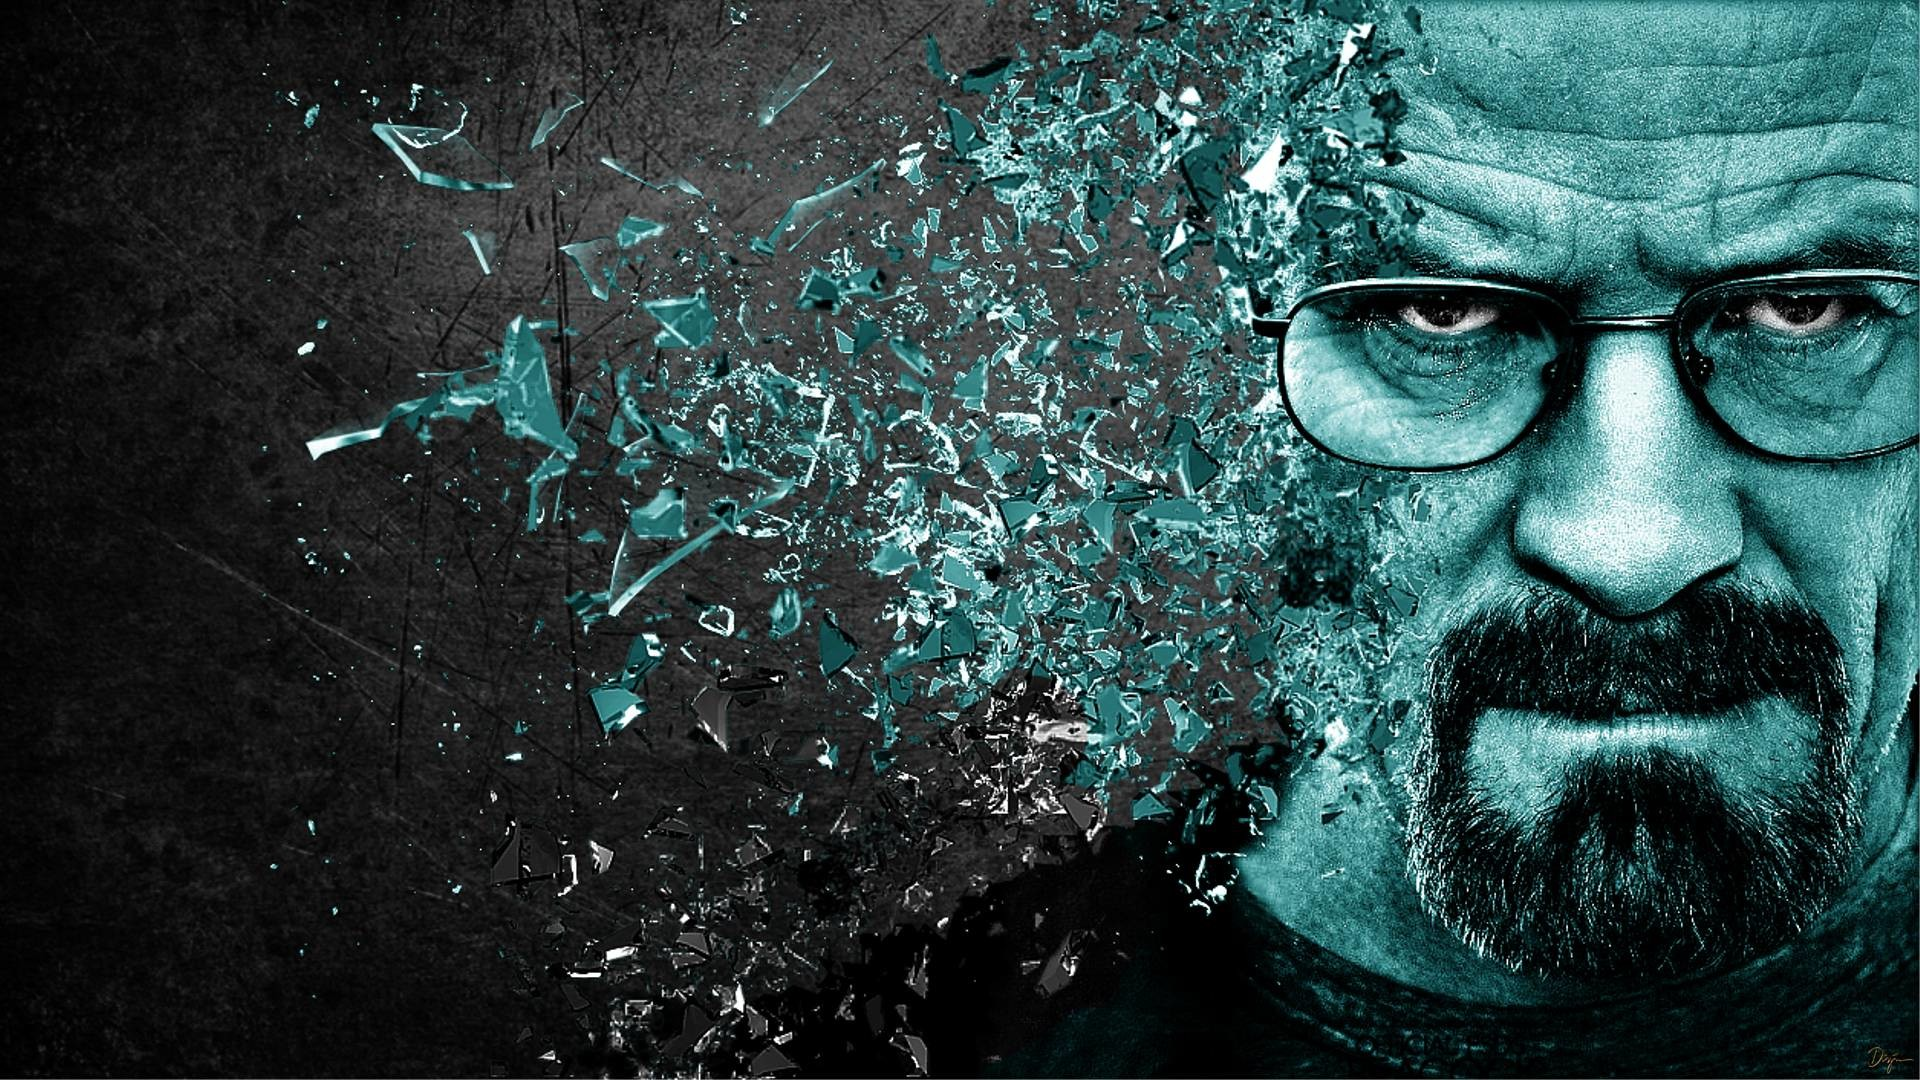 1920x1080 Breaking Bad Wallz by sahinduezguen on DeviantArt